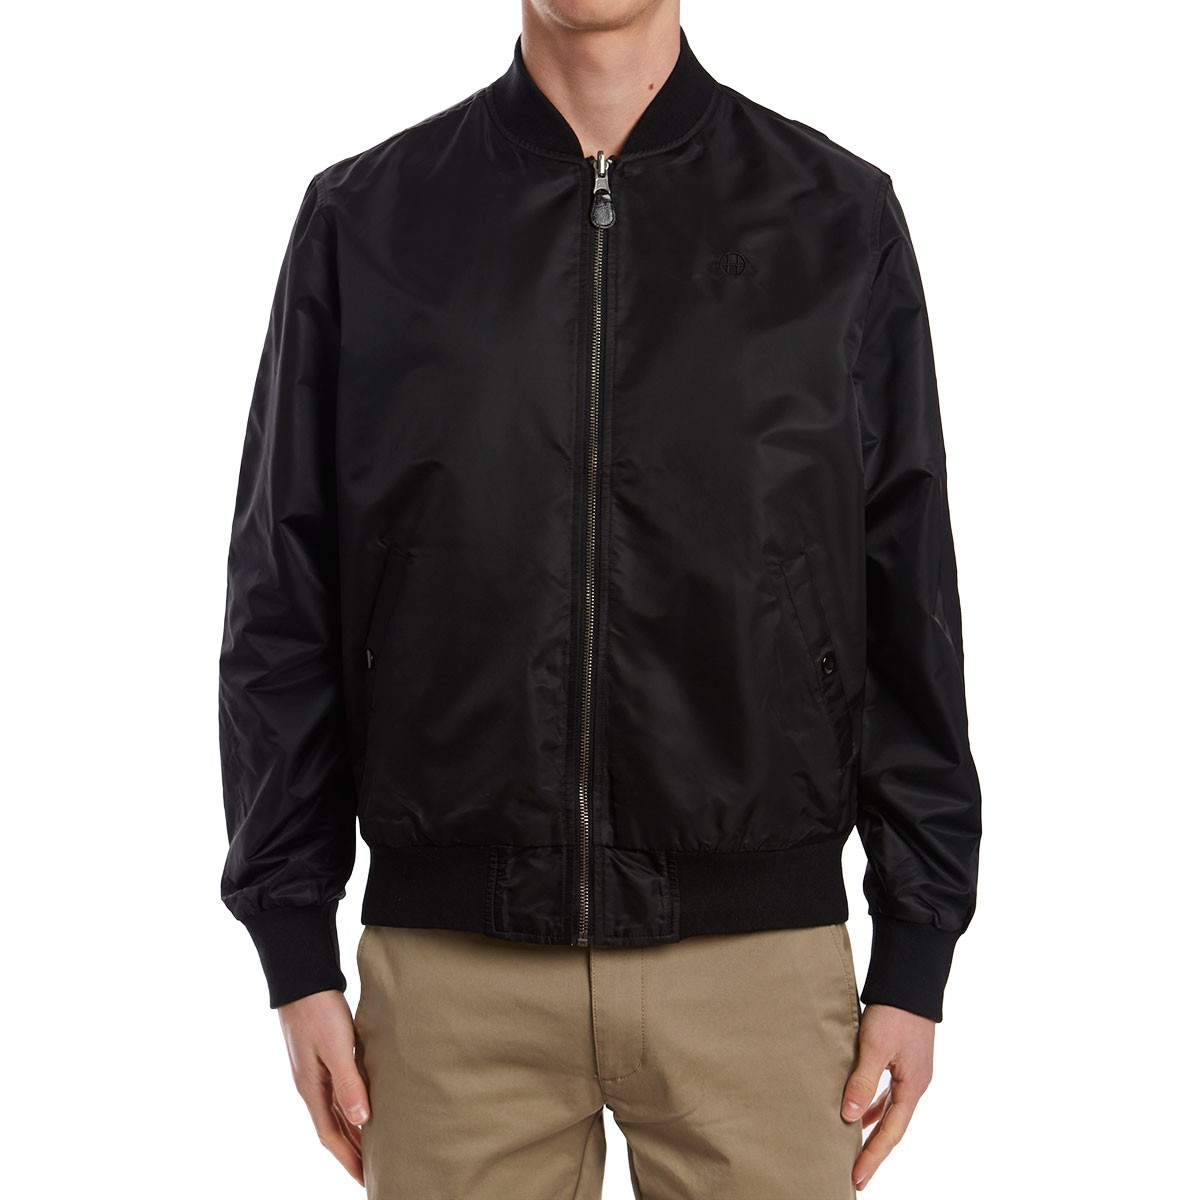 latest undefeated x the sale of shoes Huf Shots Bomber Jacket - Black